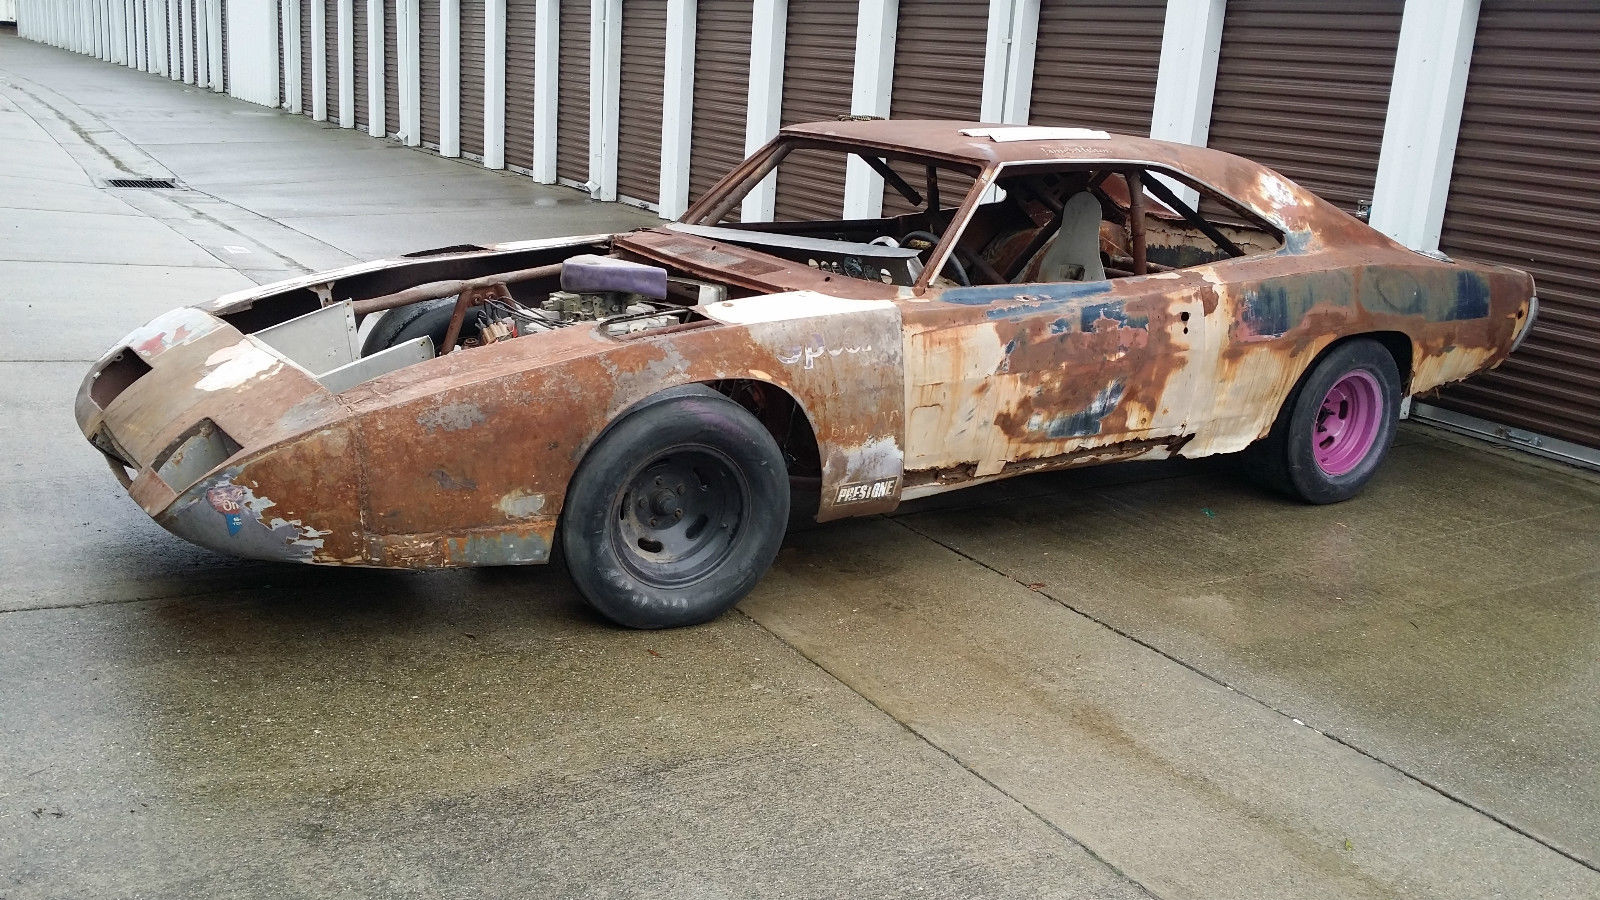 Actual NASCAR Dodge Charger Daytona For Sale On Ebay: One Of Less Than 10 Known To Exist, Raced By James Hylton, Only One To Suffer Fatal Wreck